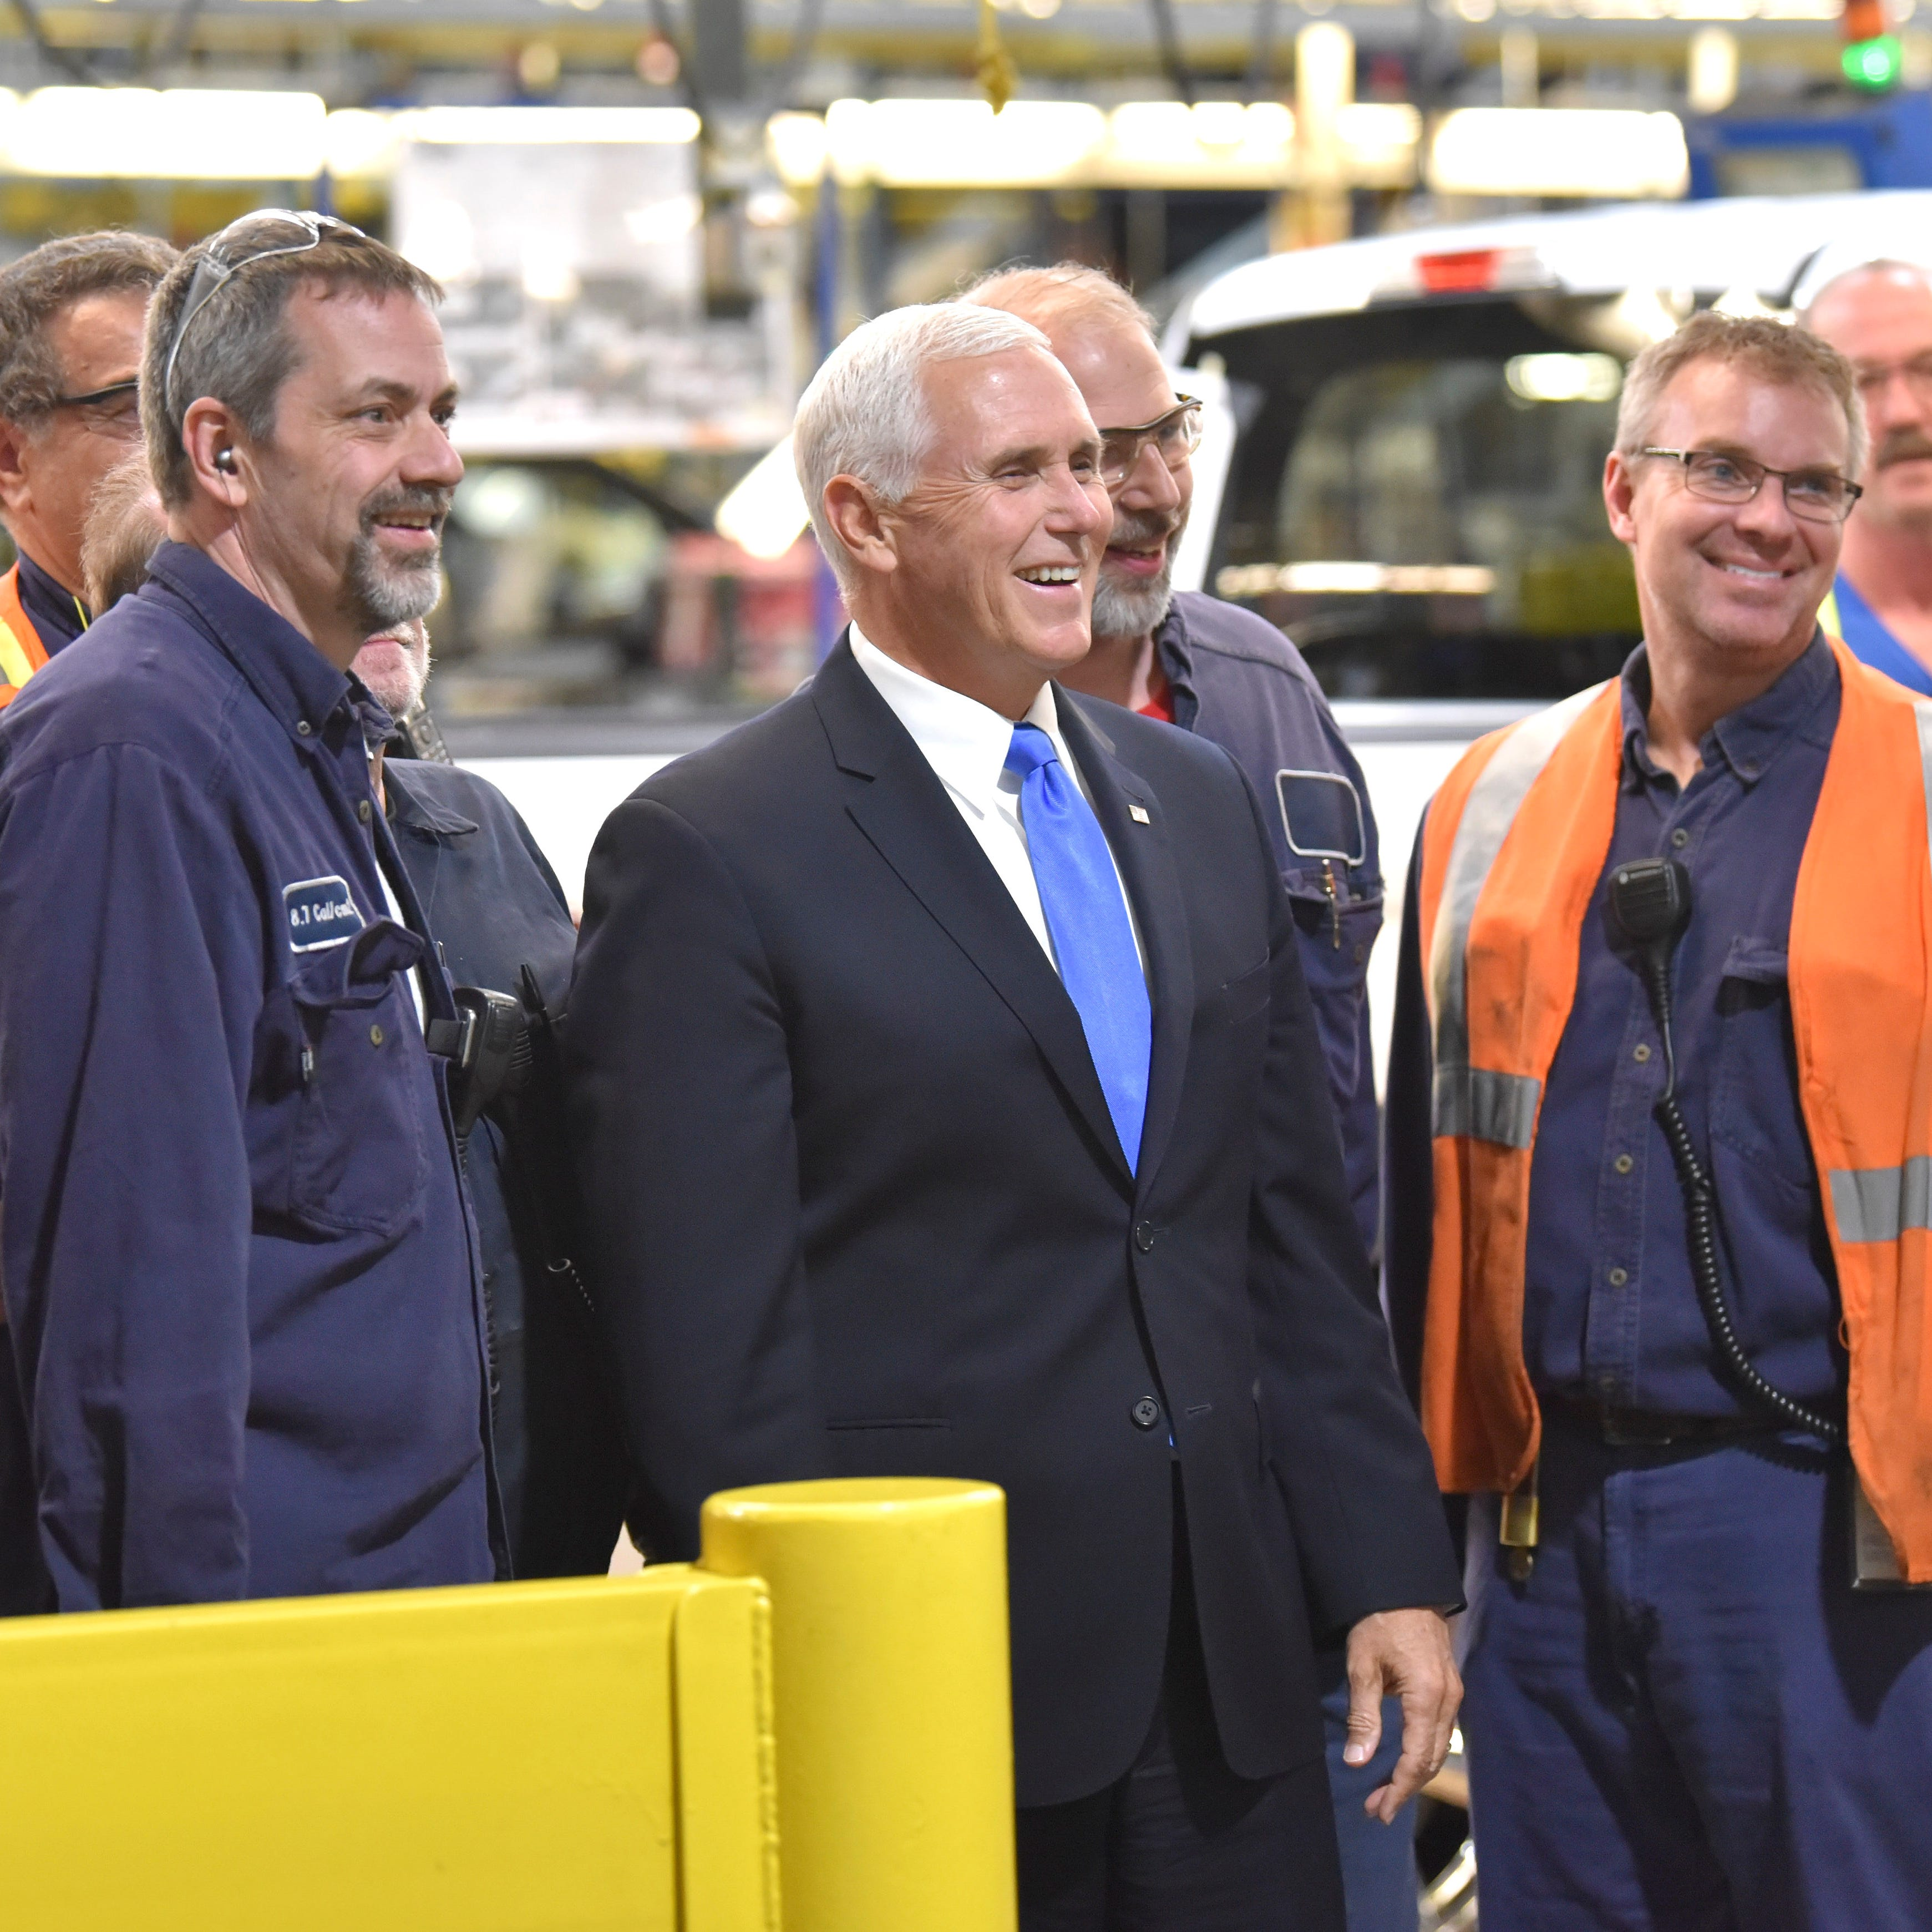 Opinion: Michigan needs revamped trade deal to pass